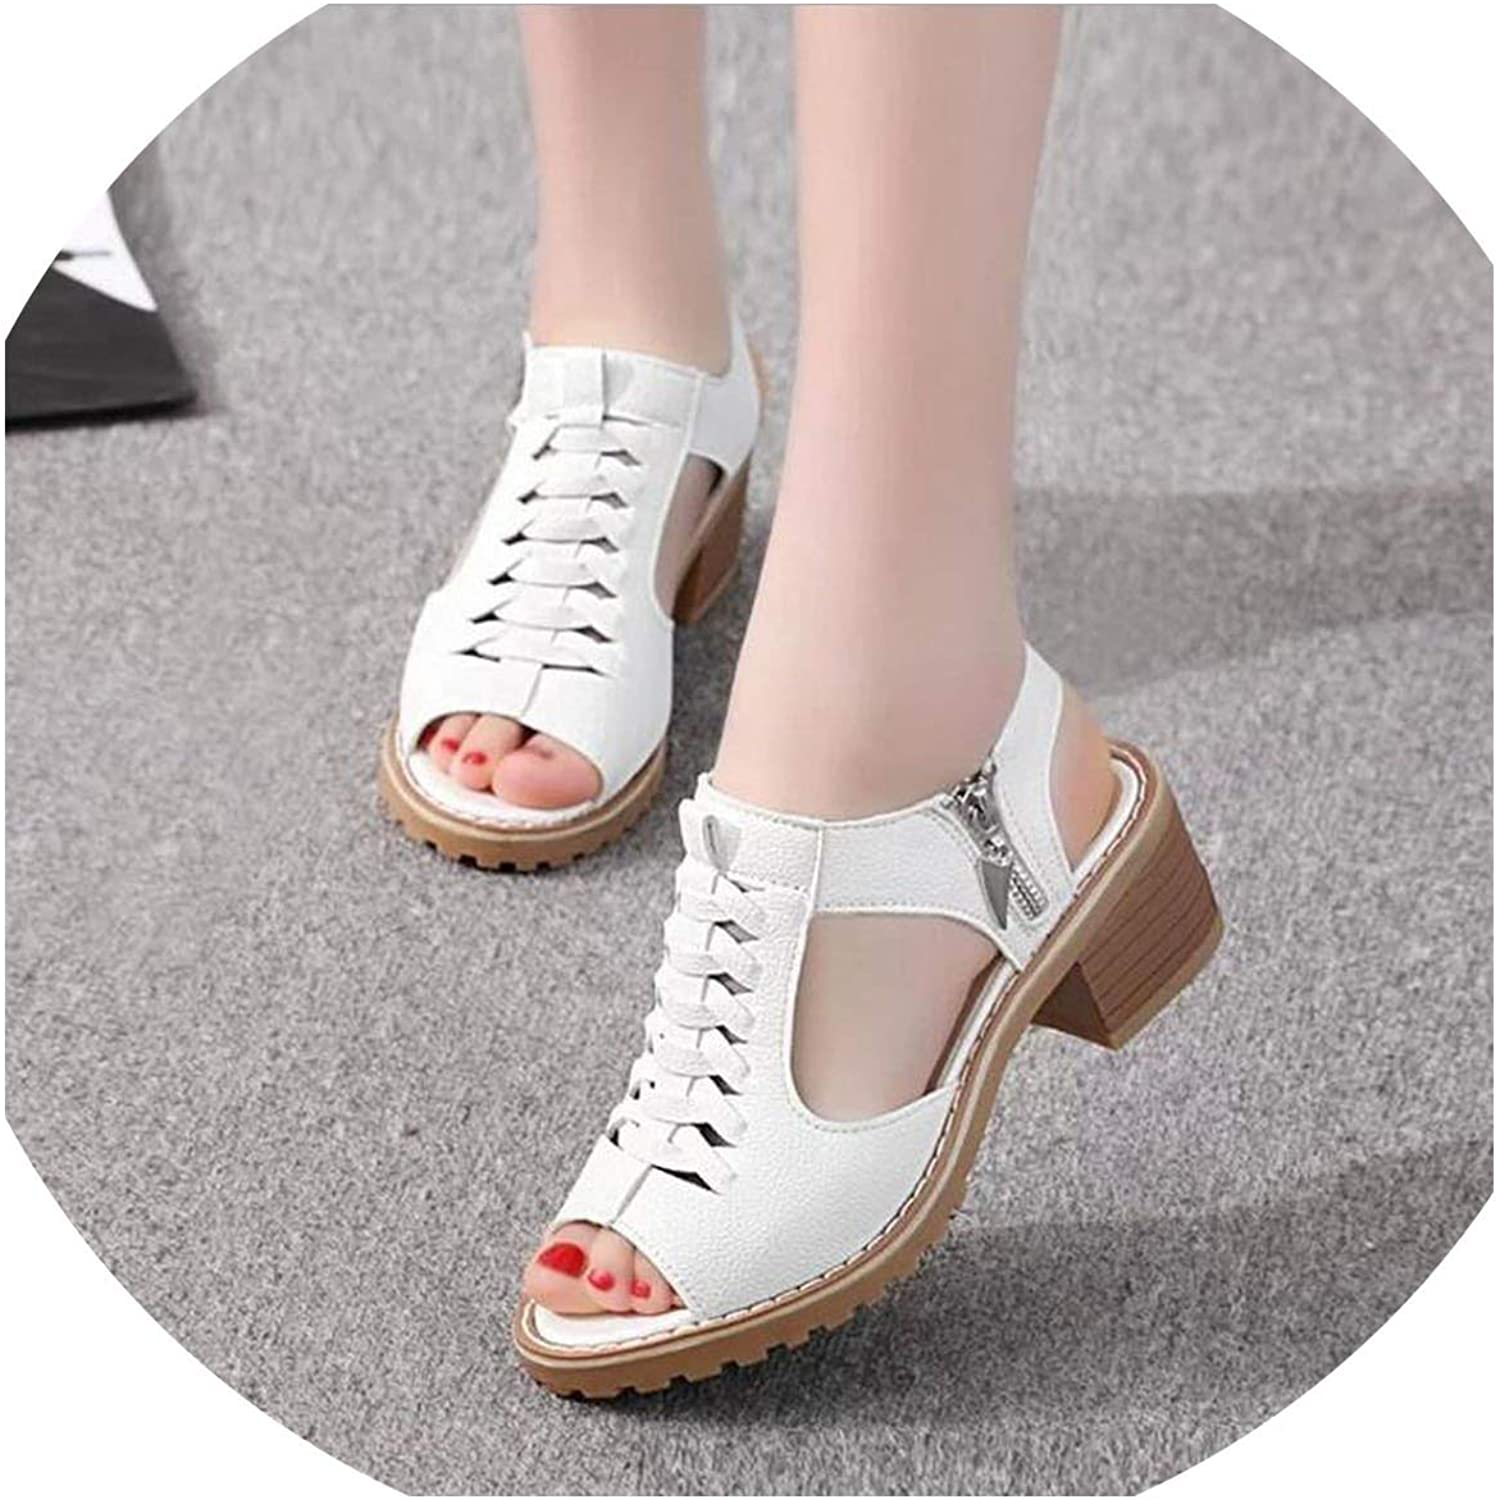 Vintage Elegant Mid Square Heel Sandals Summer Style Peep Toe Cross Tied Side Zip Design Woman shoes